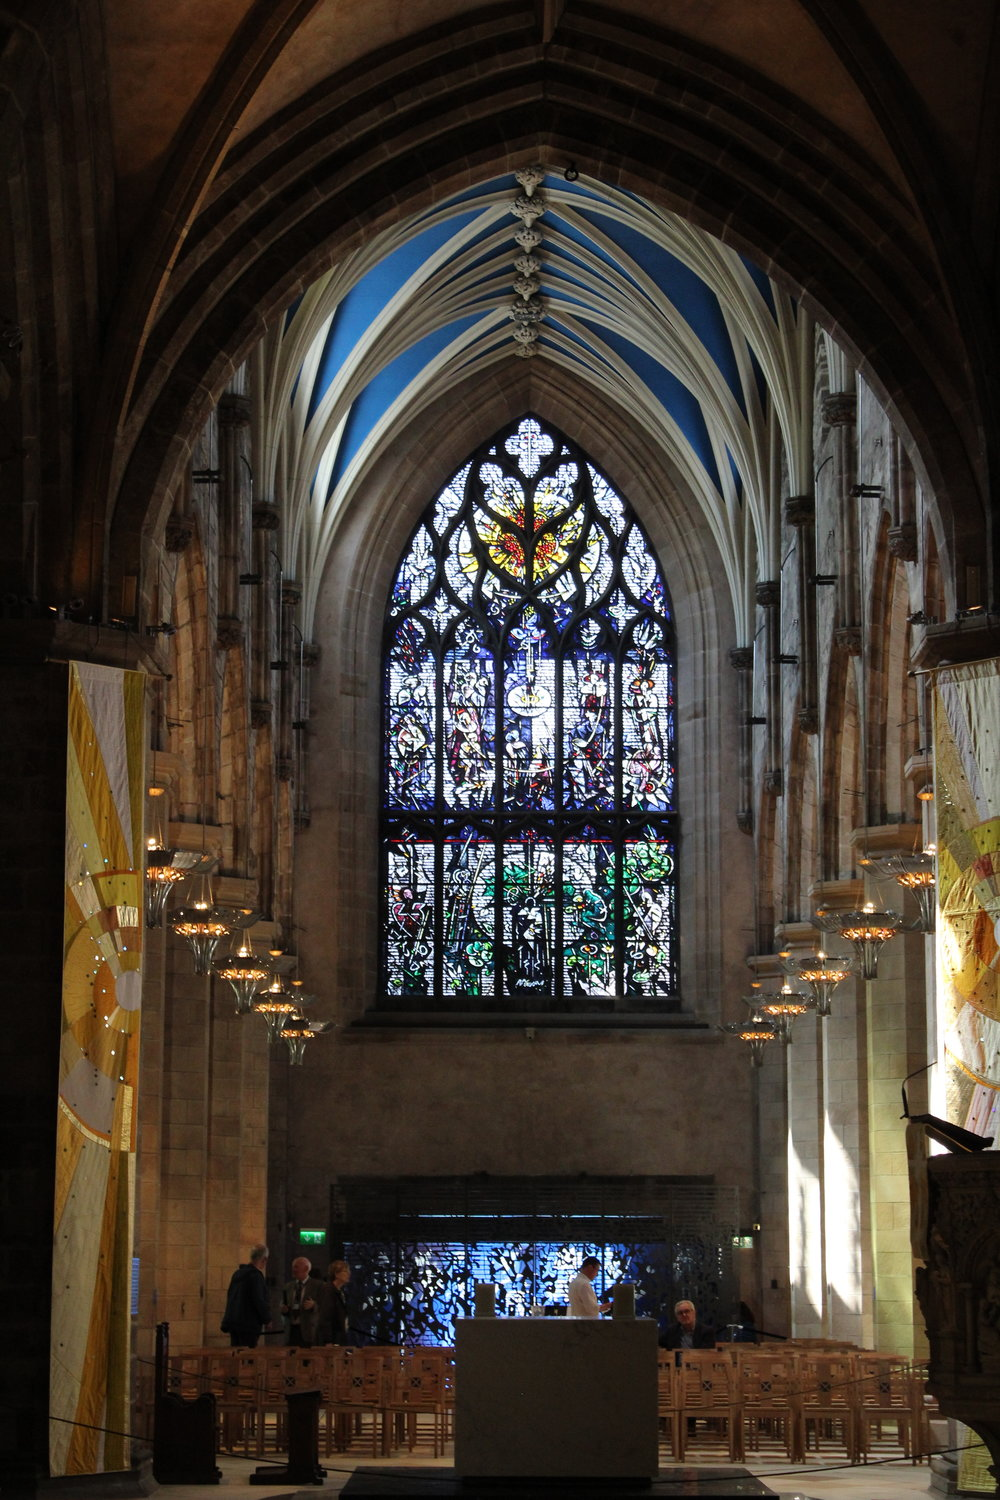 The interior of St. Giles